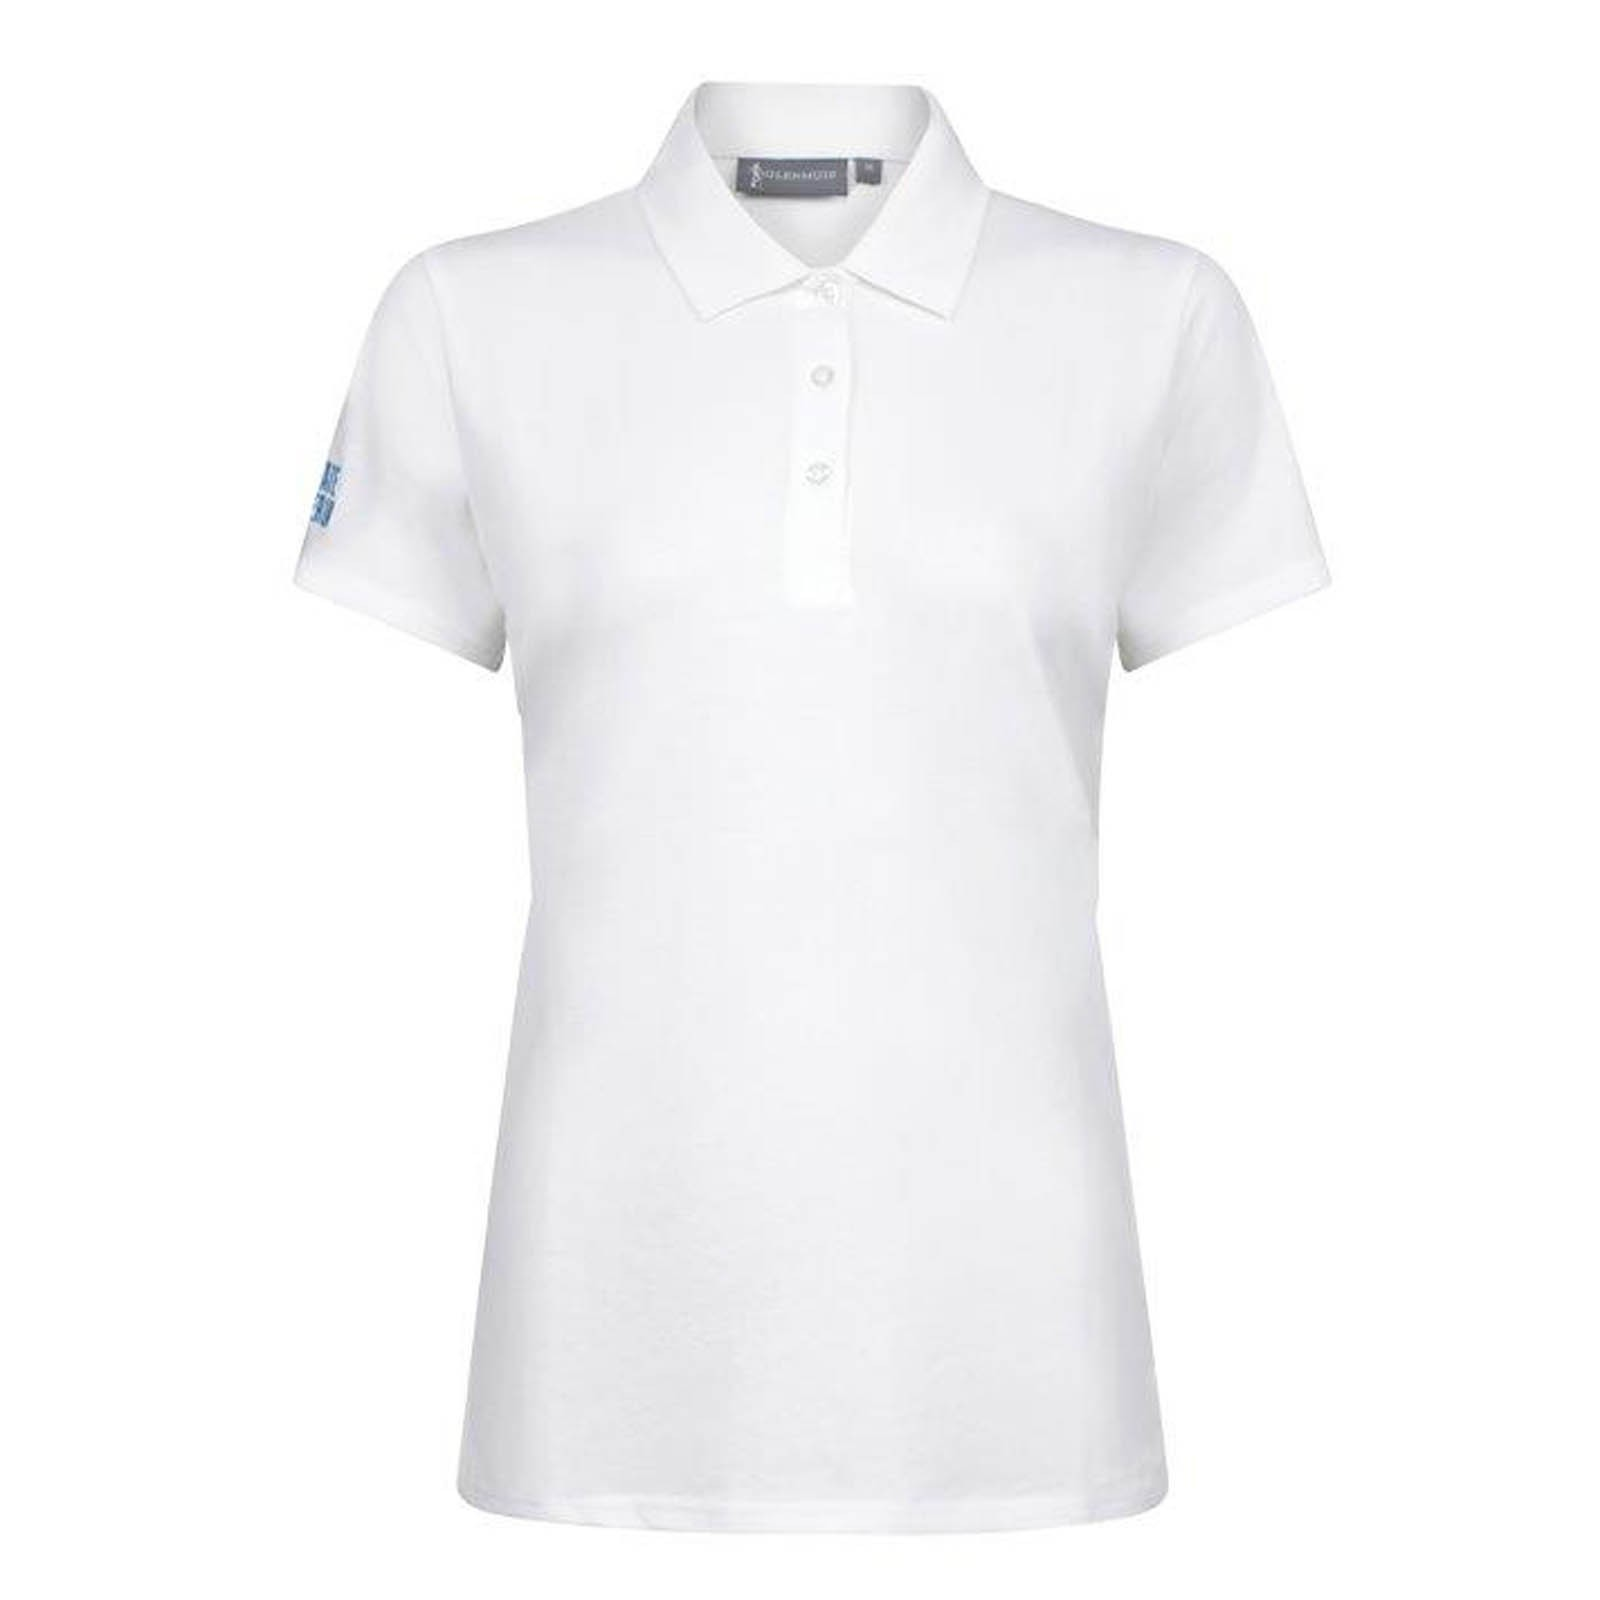 Prostate Cancer UK Ladies Golf Polo Shirts